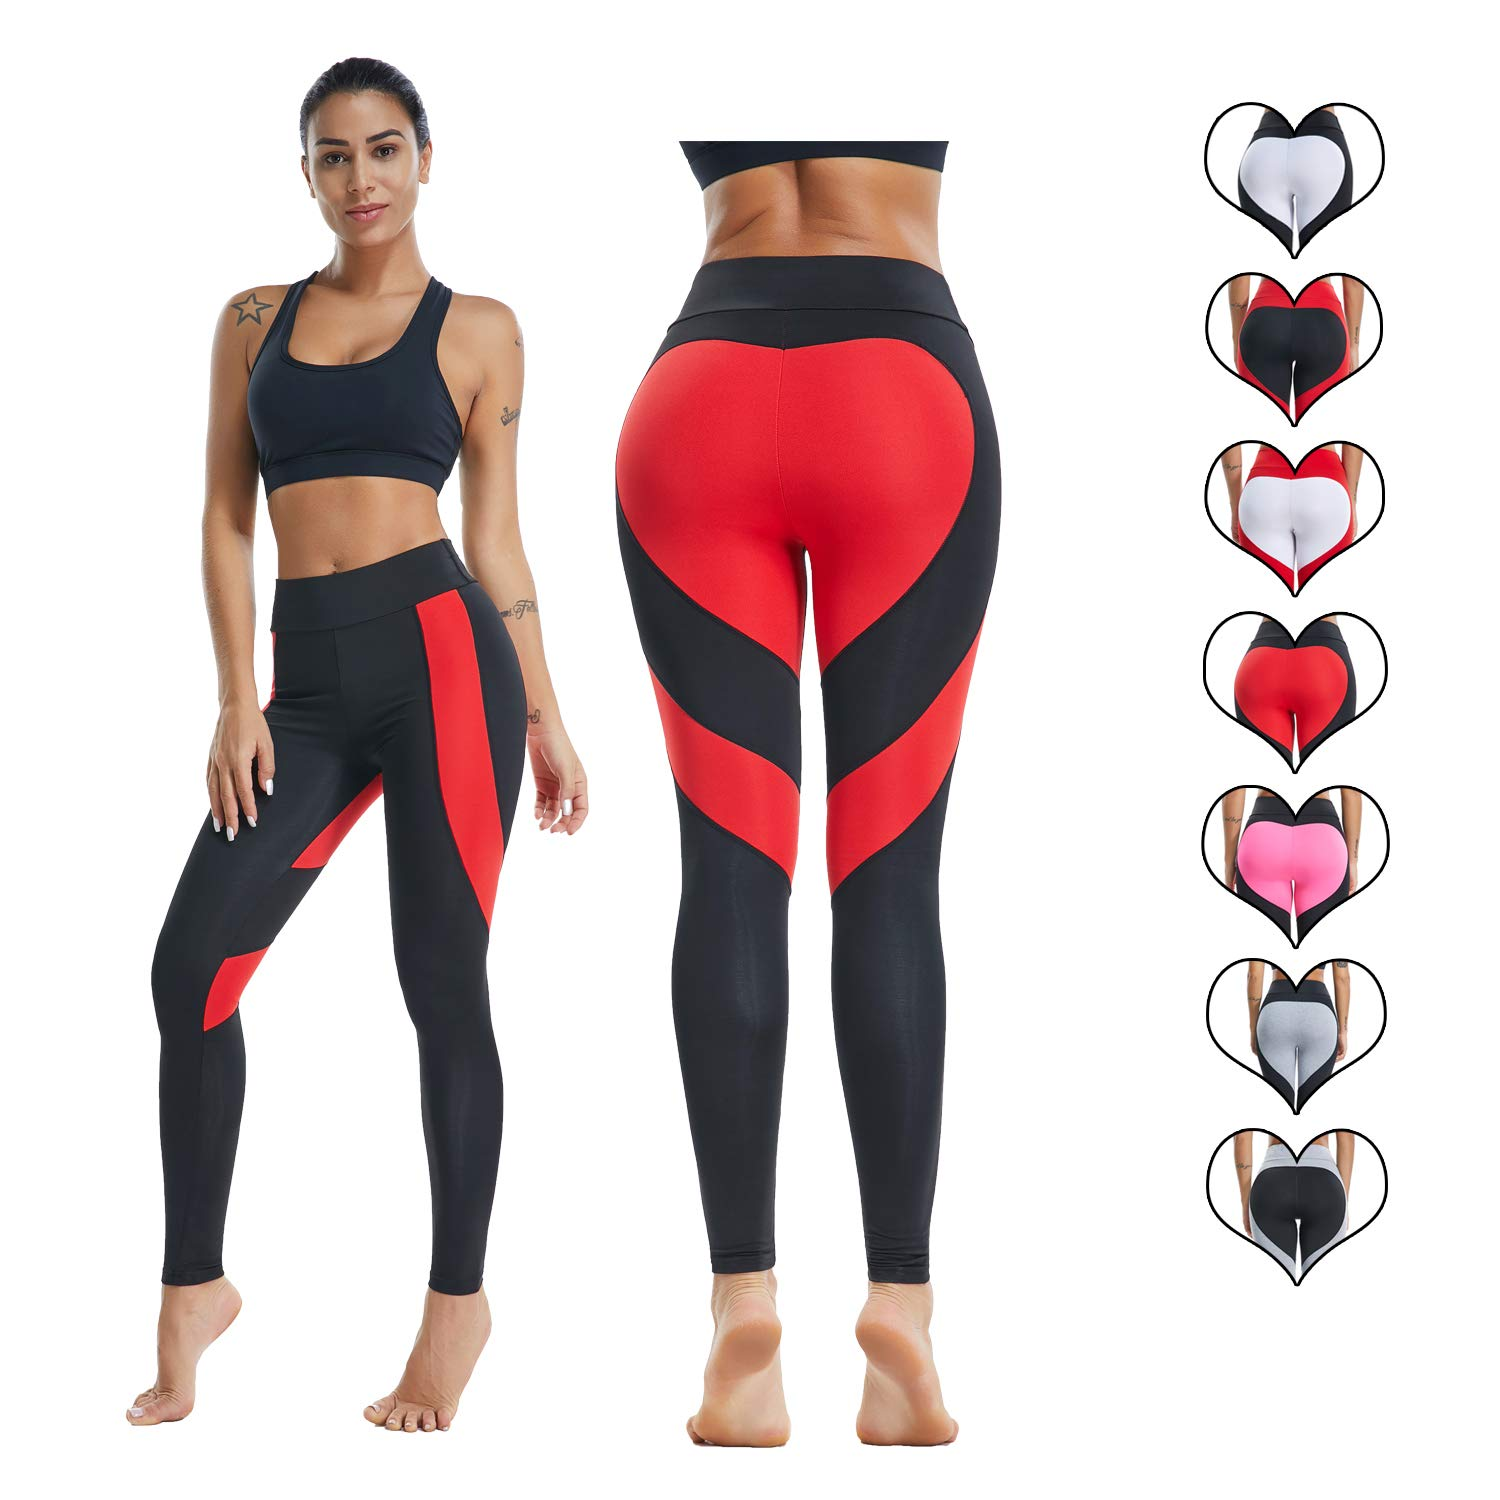 BYBH (FBA)|Red& PANTS レディース M B07HFSSWRS Red& Black Heart US US 4-6 = Tag Size M (FBA) US 4-6 = Tag Size M (FBA)|Red& Black Heart, イータイムス:f50fbe96 --- ero-shop-kupidon.ru